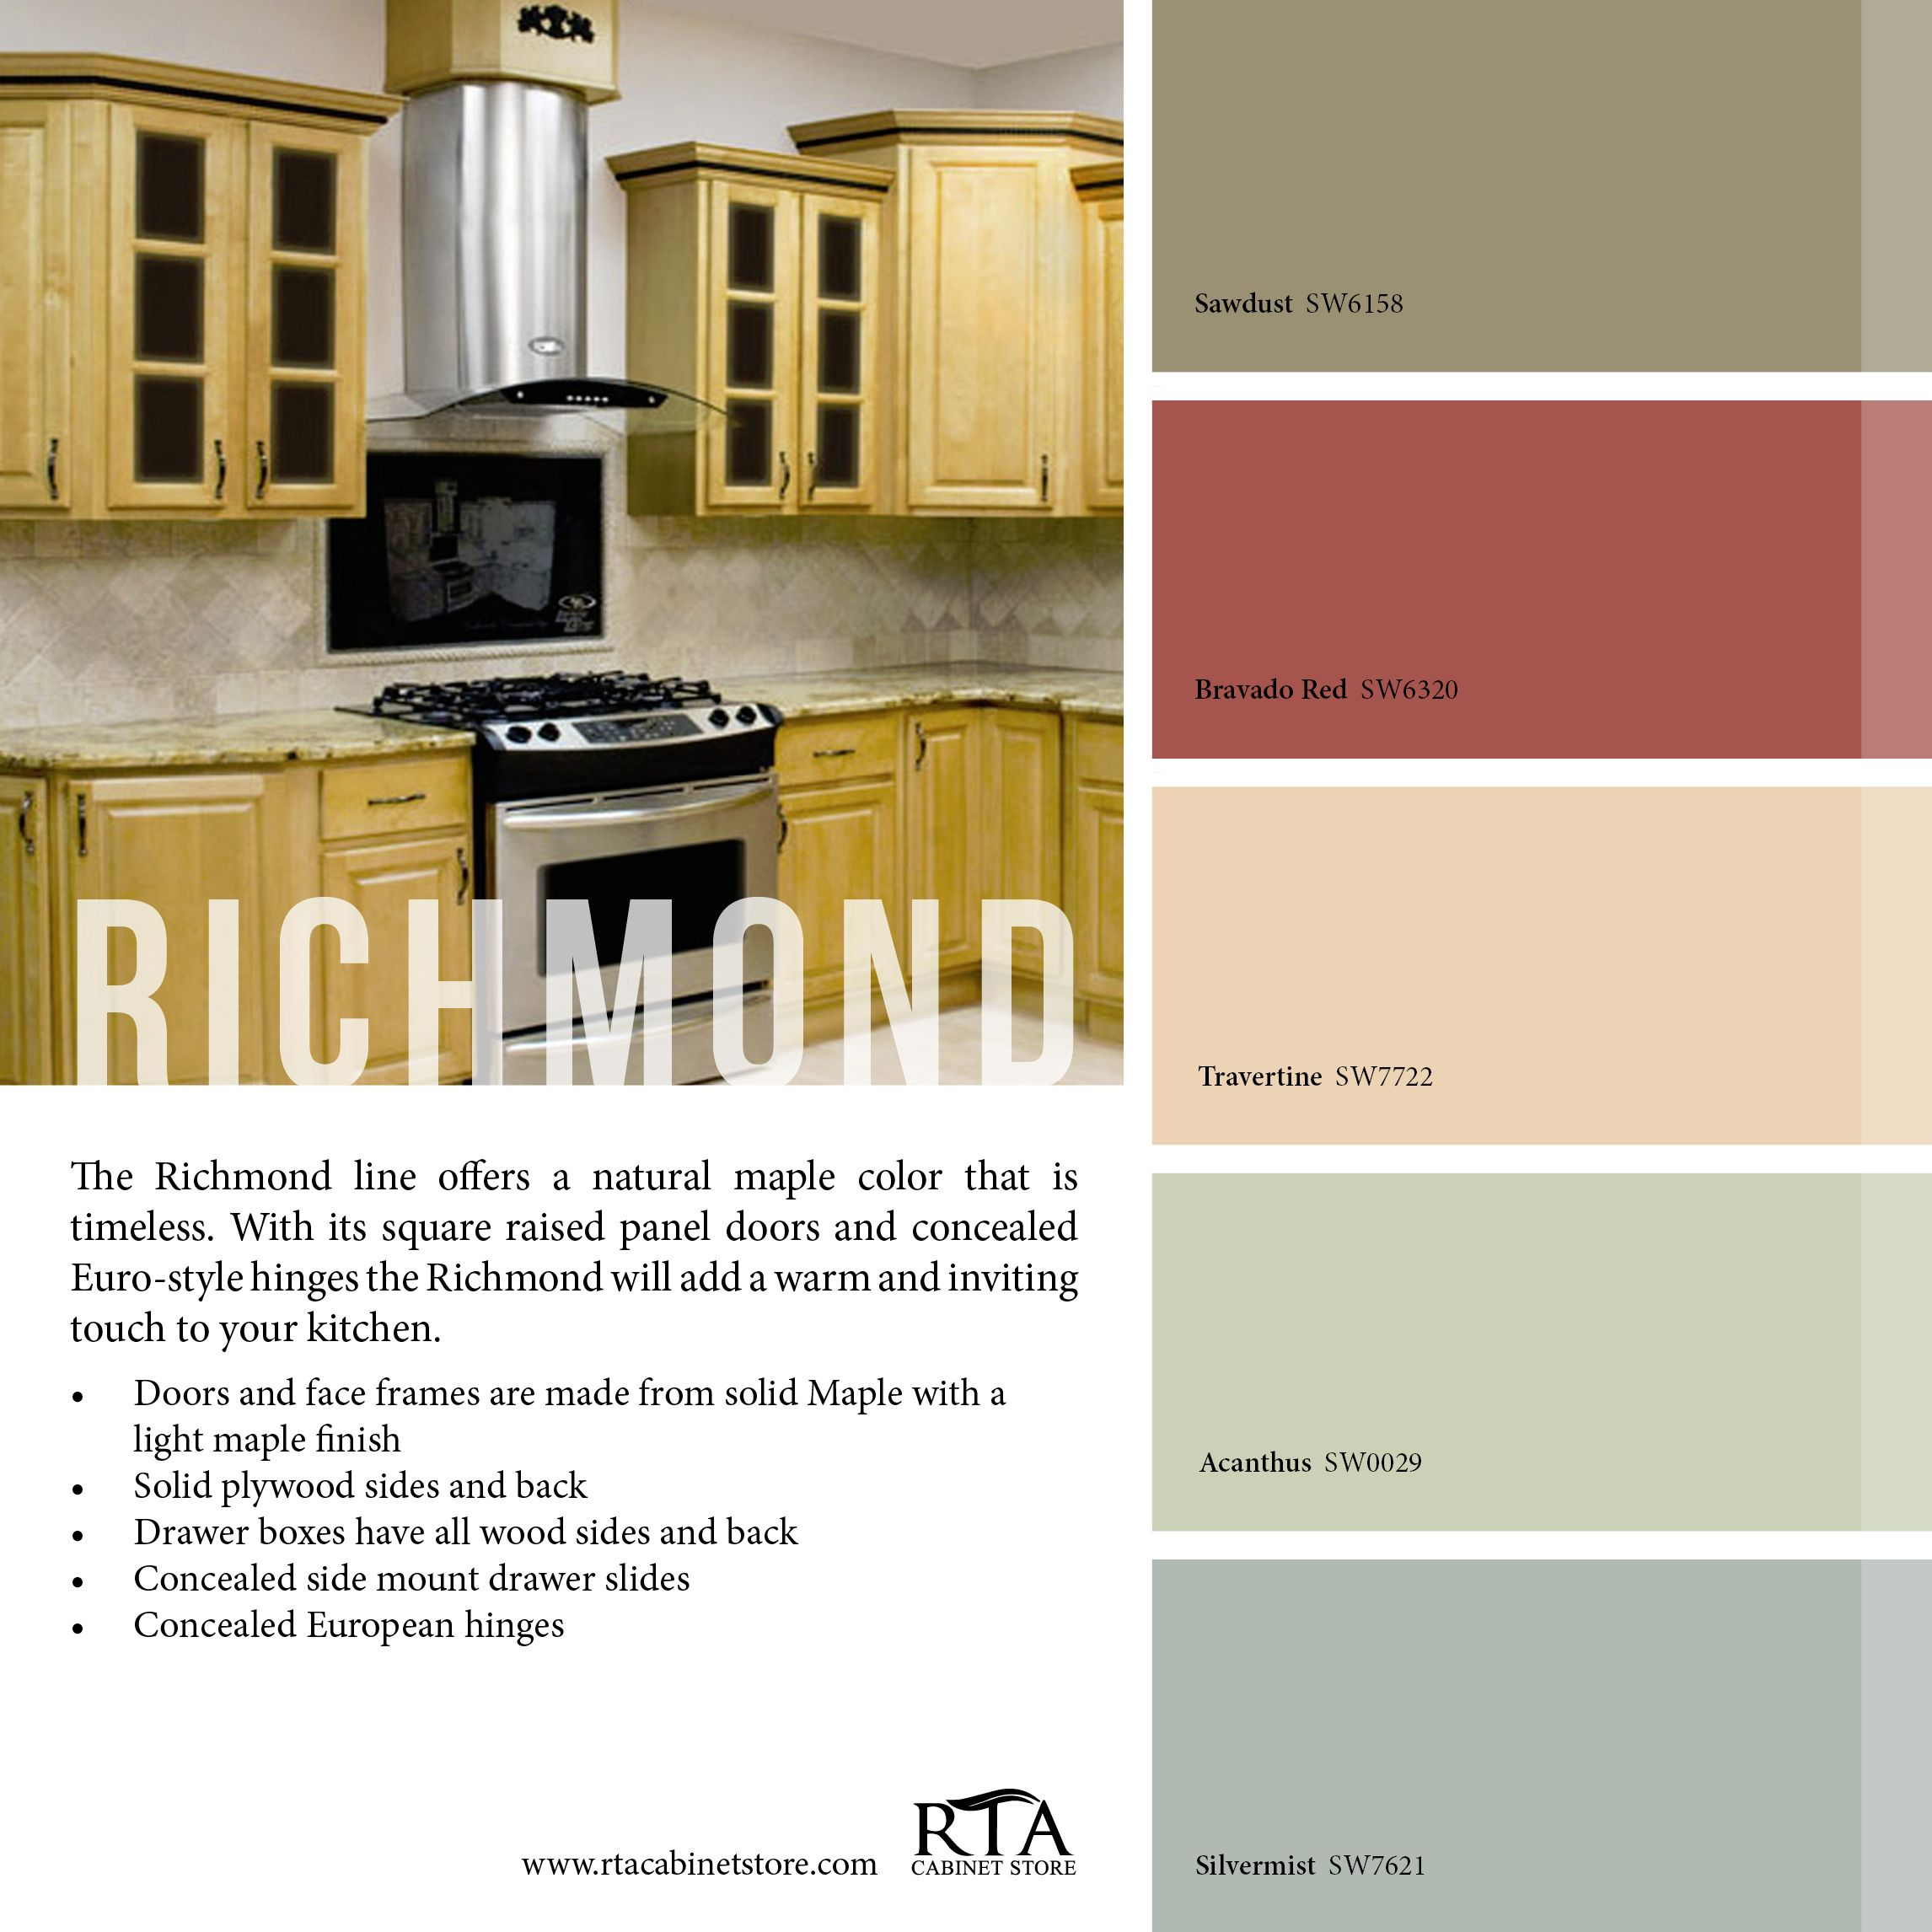 Color Palette To Go With Our Richmond Kitchen Cabinet Line Don T Like The Cabinet Color In The Decor Color Palette Online Kitchen Design Kitchen Tools Design